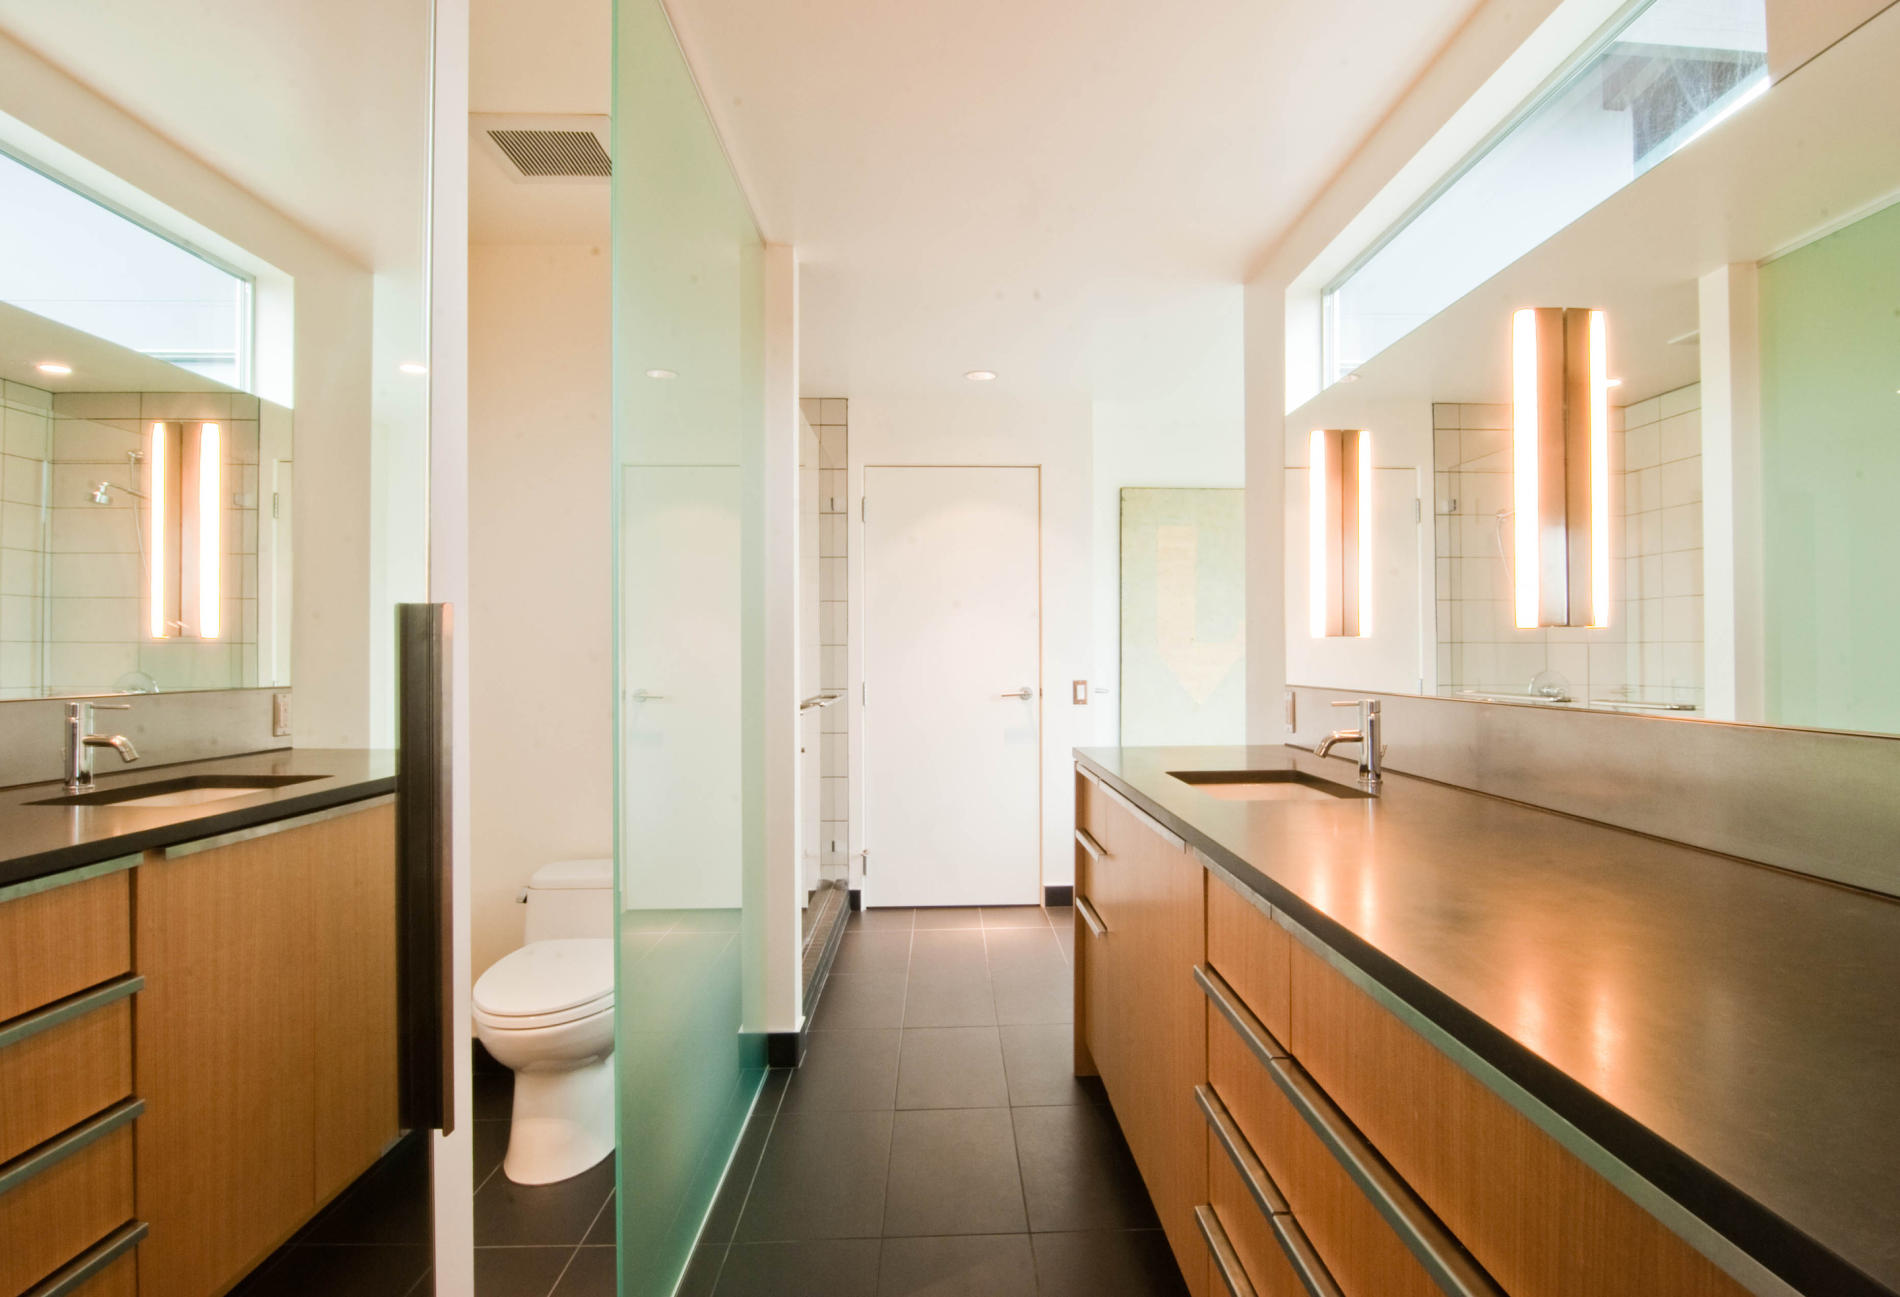 27 amazing ideas and pictures of mid century modern for The bathroom designer